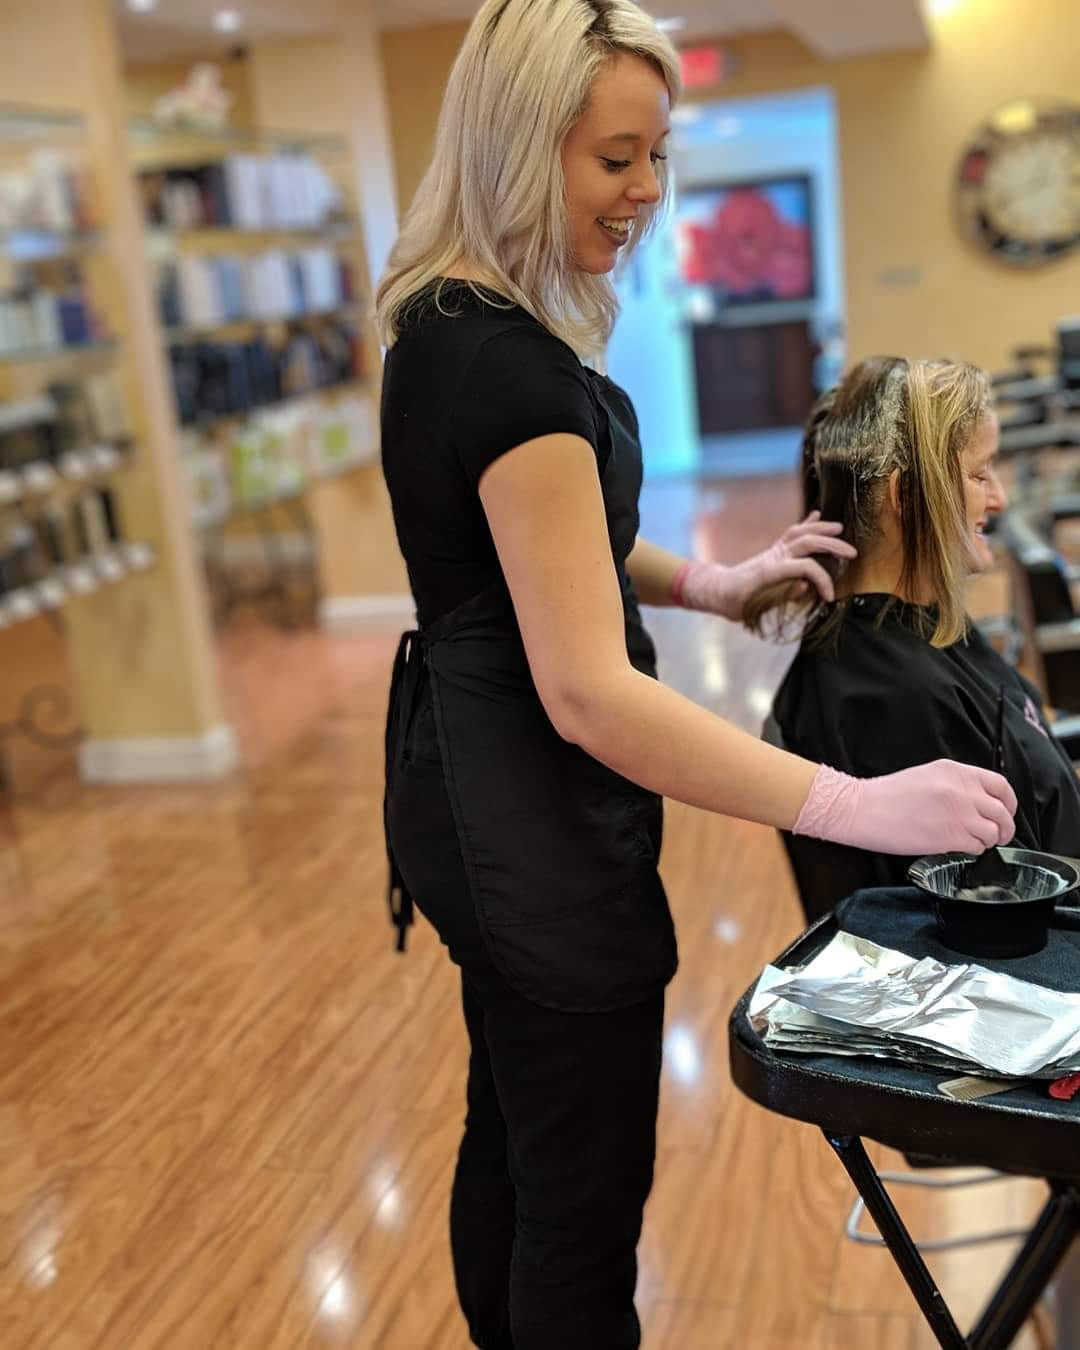 Luxe Salon Hair provider doing hair treatment on client in Rochester New York